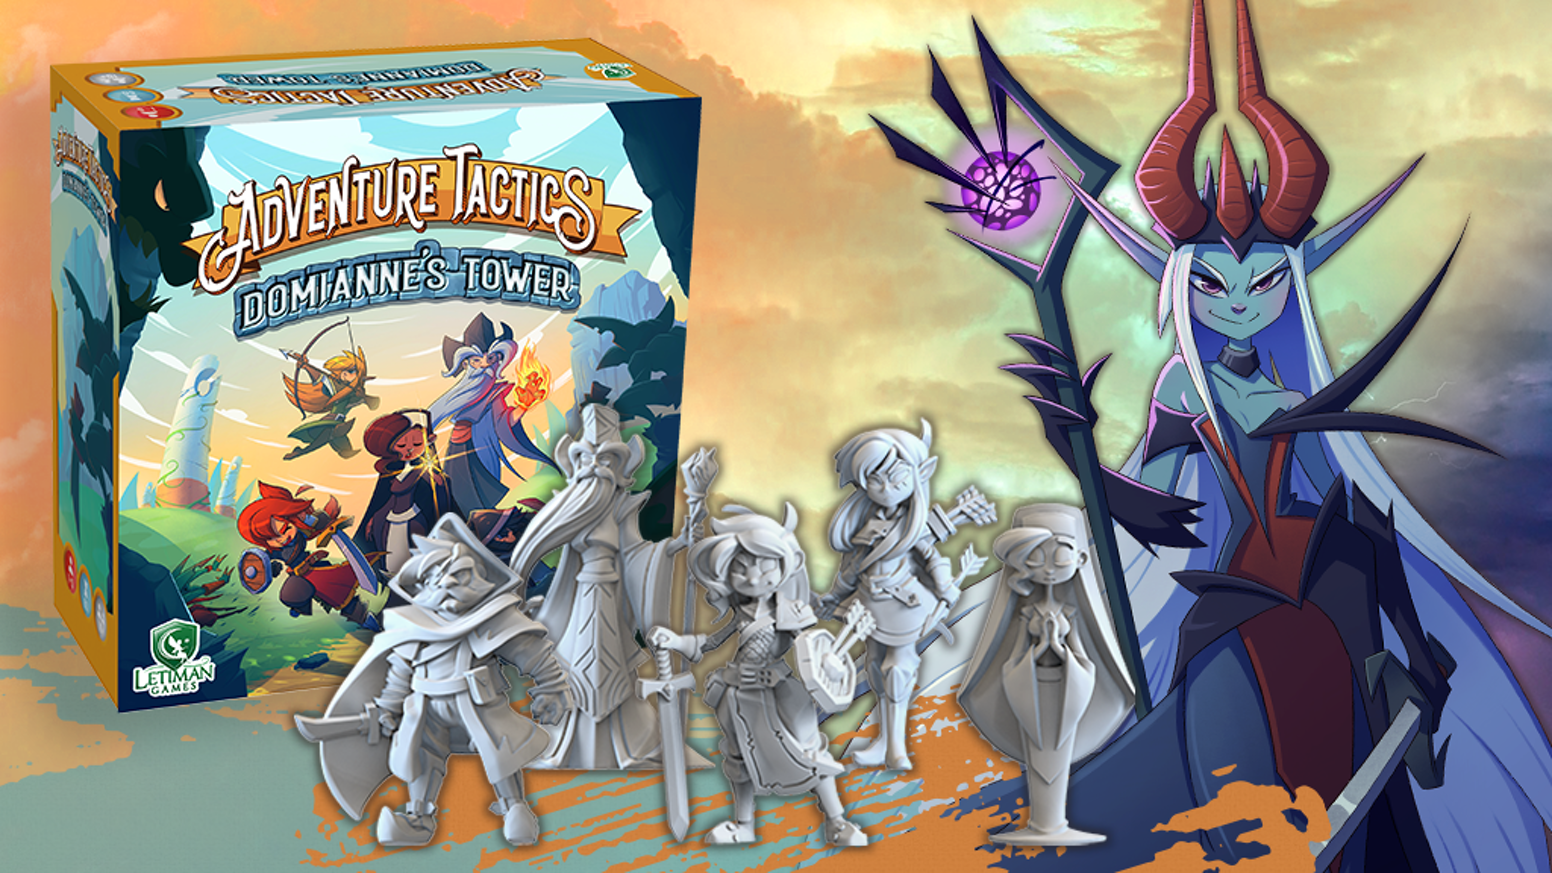 Adventure Tactics: Domianne's Tower is a co-op tactical combat game with deck-construction inspired by our favorite sRPGs (20+ classes)